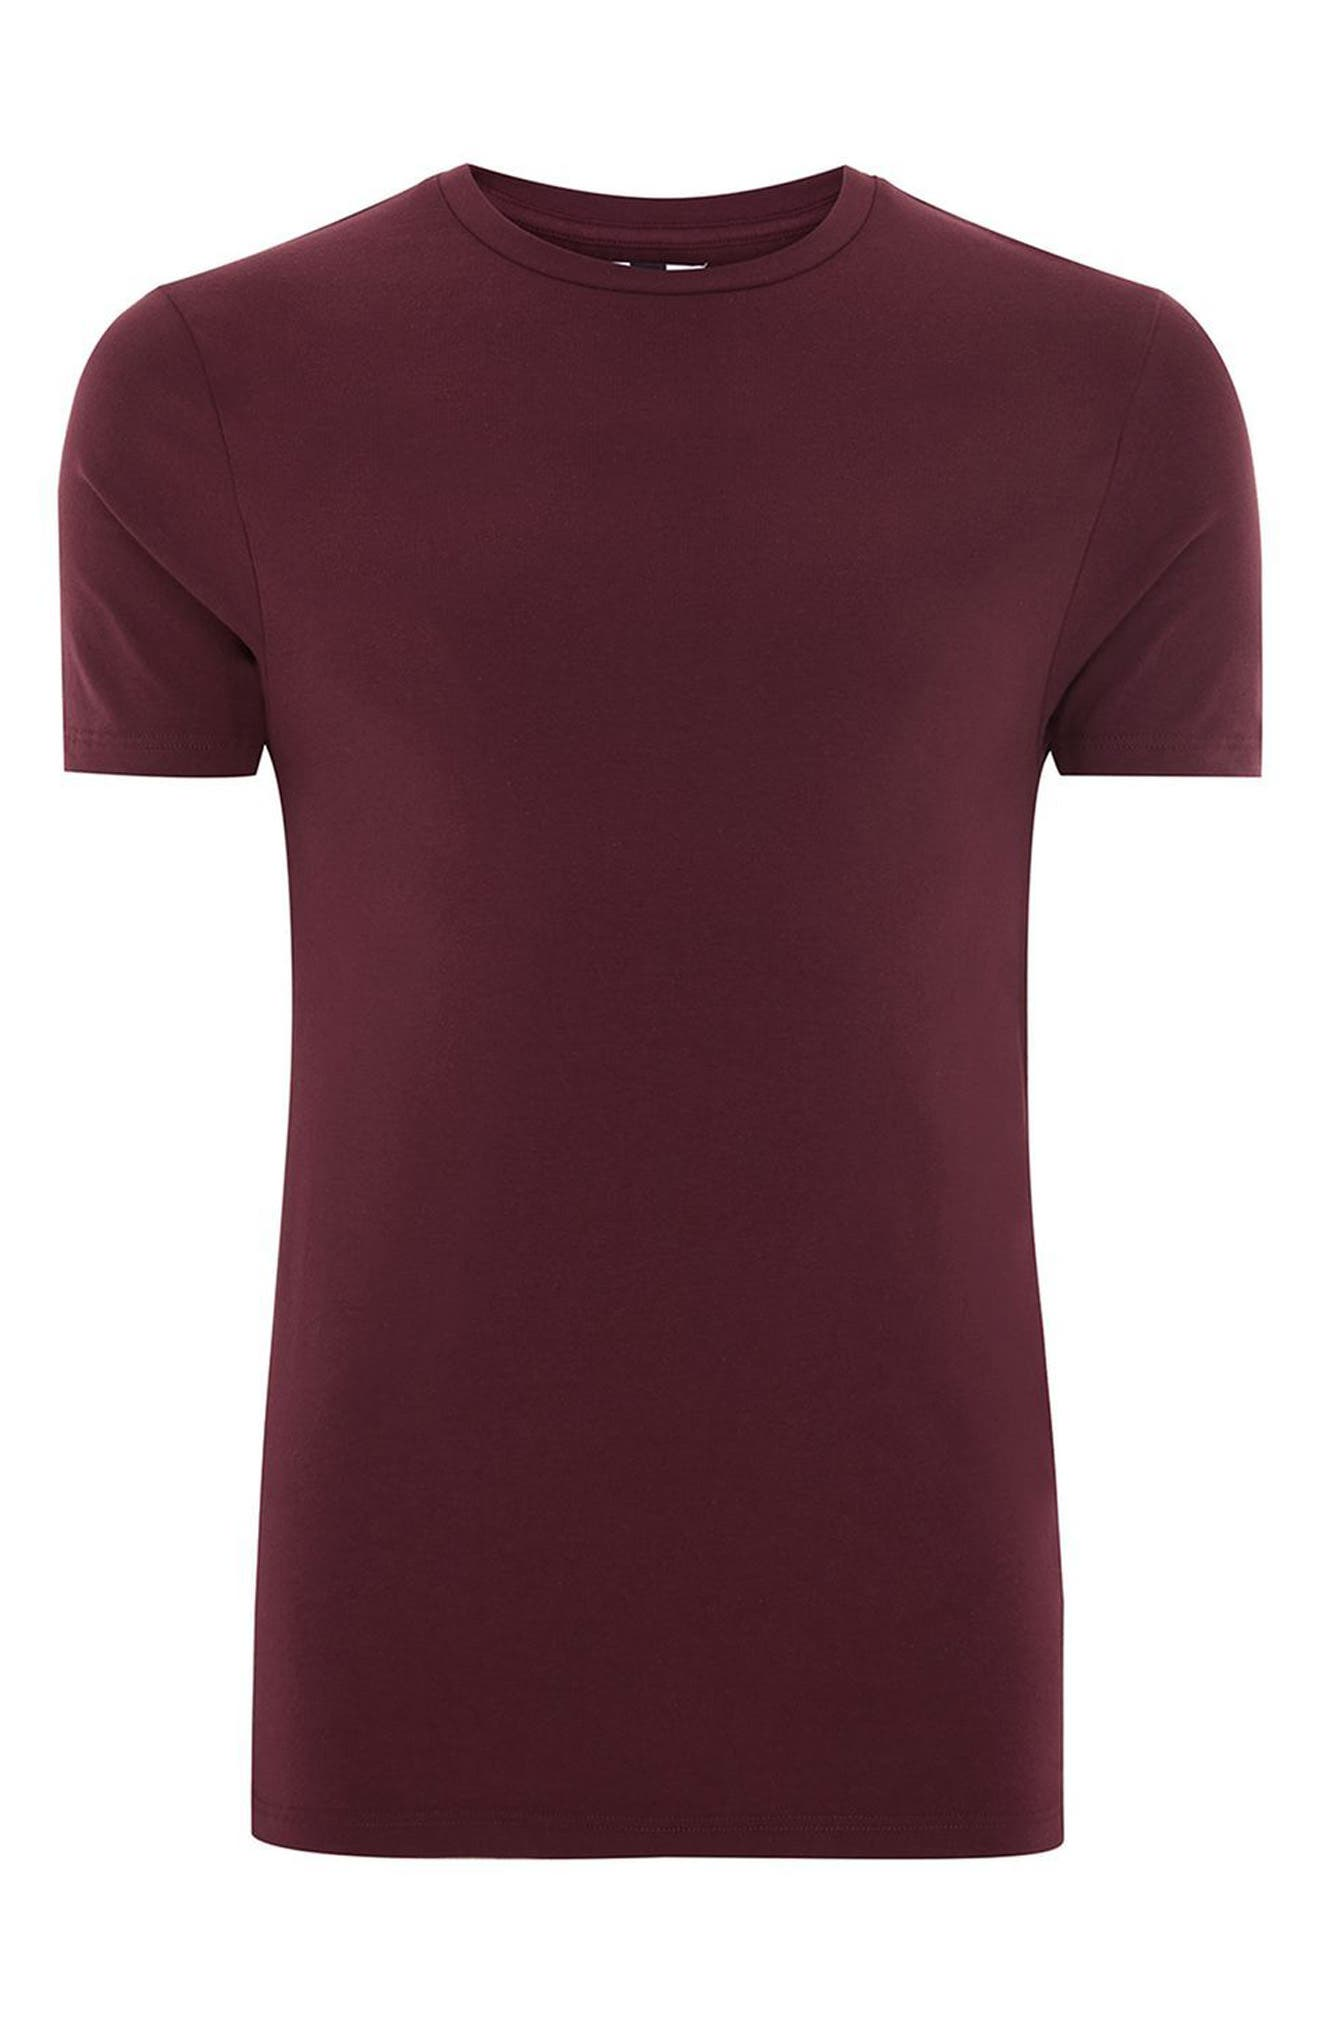 Ultra Muscle Fit T-Shirt,                             Alternate thumbnail 4, color,                             Burgundy